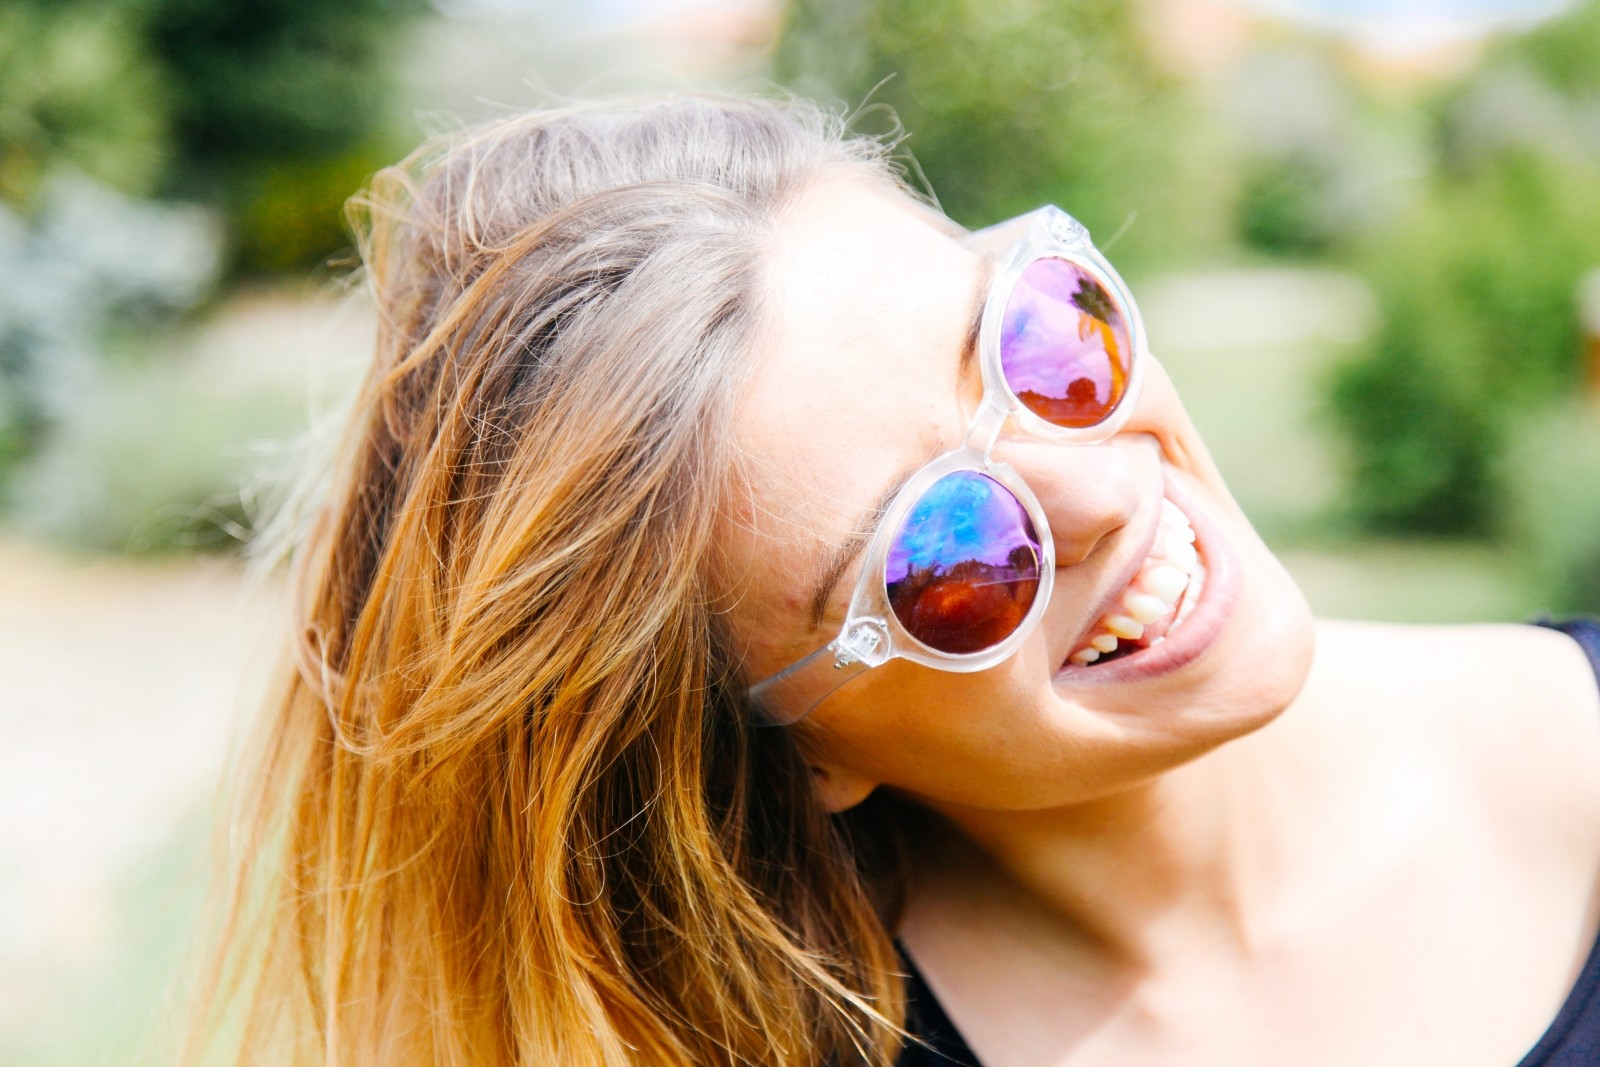 smiling-young-woman-in-sunglasses